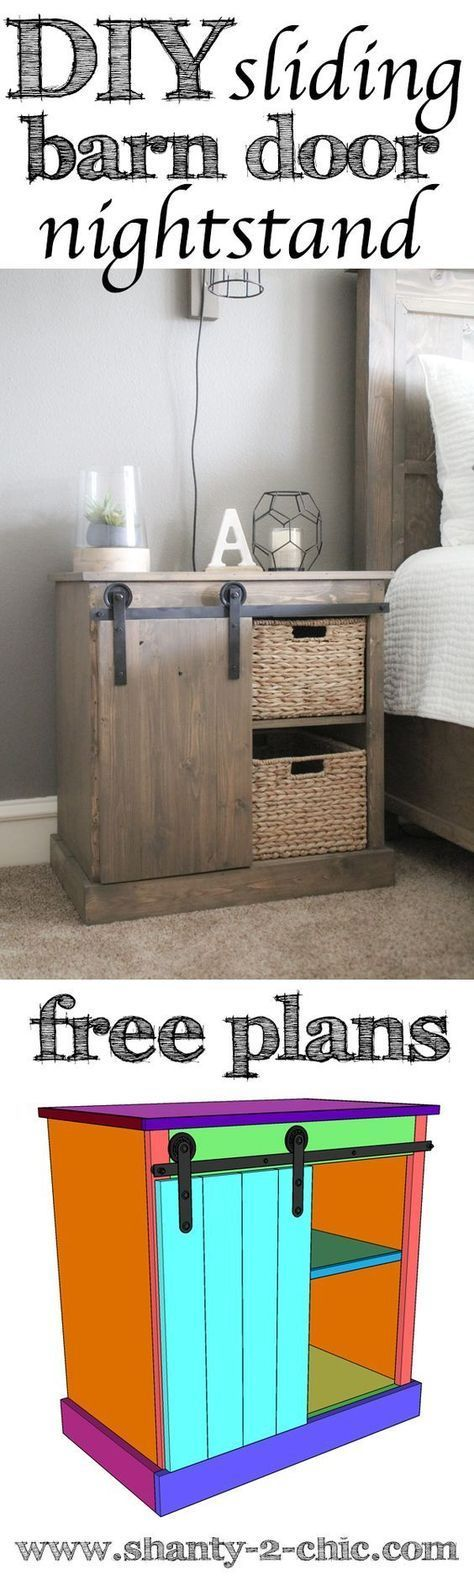 Ideas for the house DIY Sliding Barn Door Nightstand plans and how-to video! Learn how to build this nightstand and the $20 DIY barn door hardware. Easy to customize and perfect for so many places in your home! We love barn doors and love fining unique ways to incorporate them on furniture pieces. Visit www.shanty-2-chic.com for the free plans and how-to video.